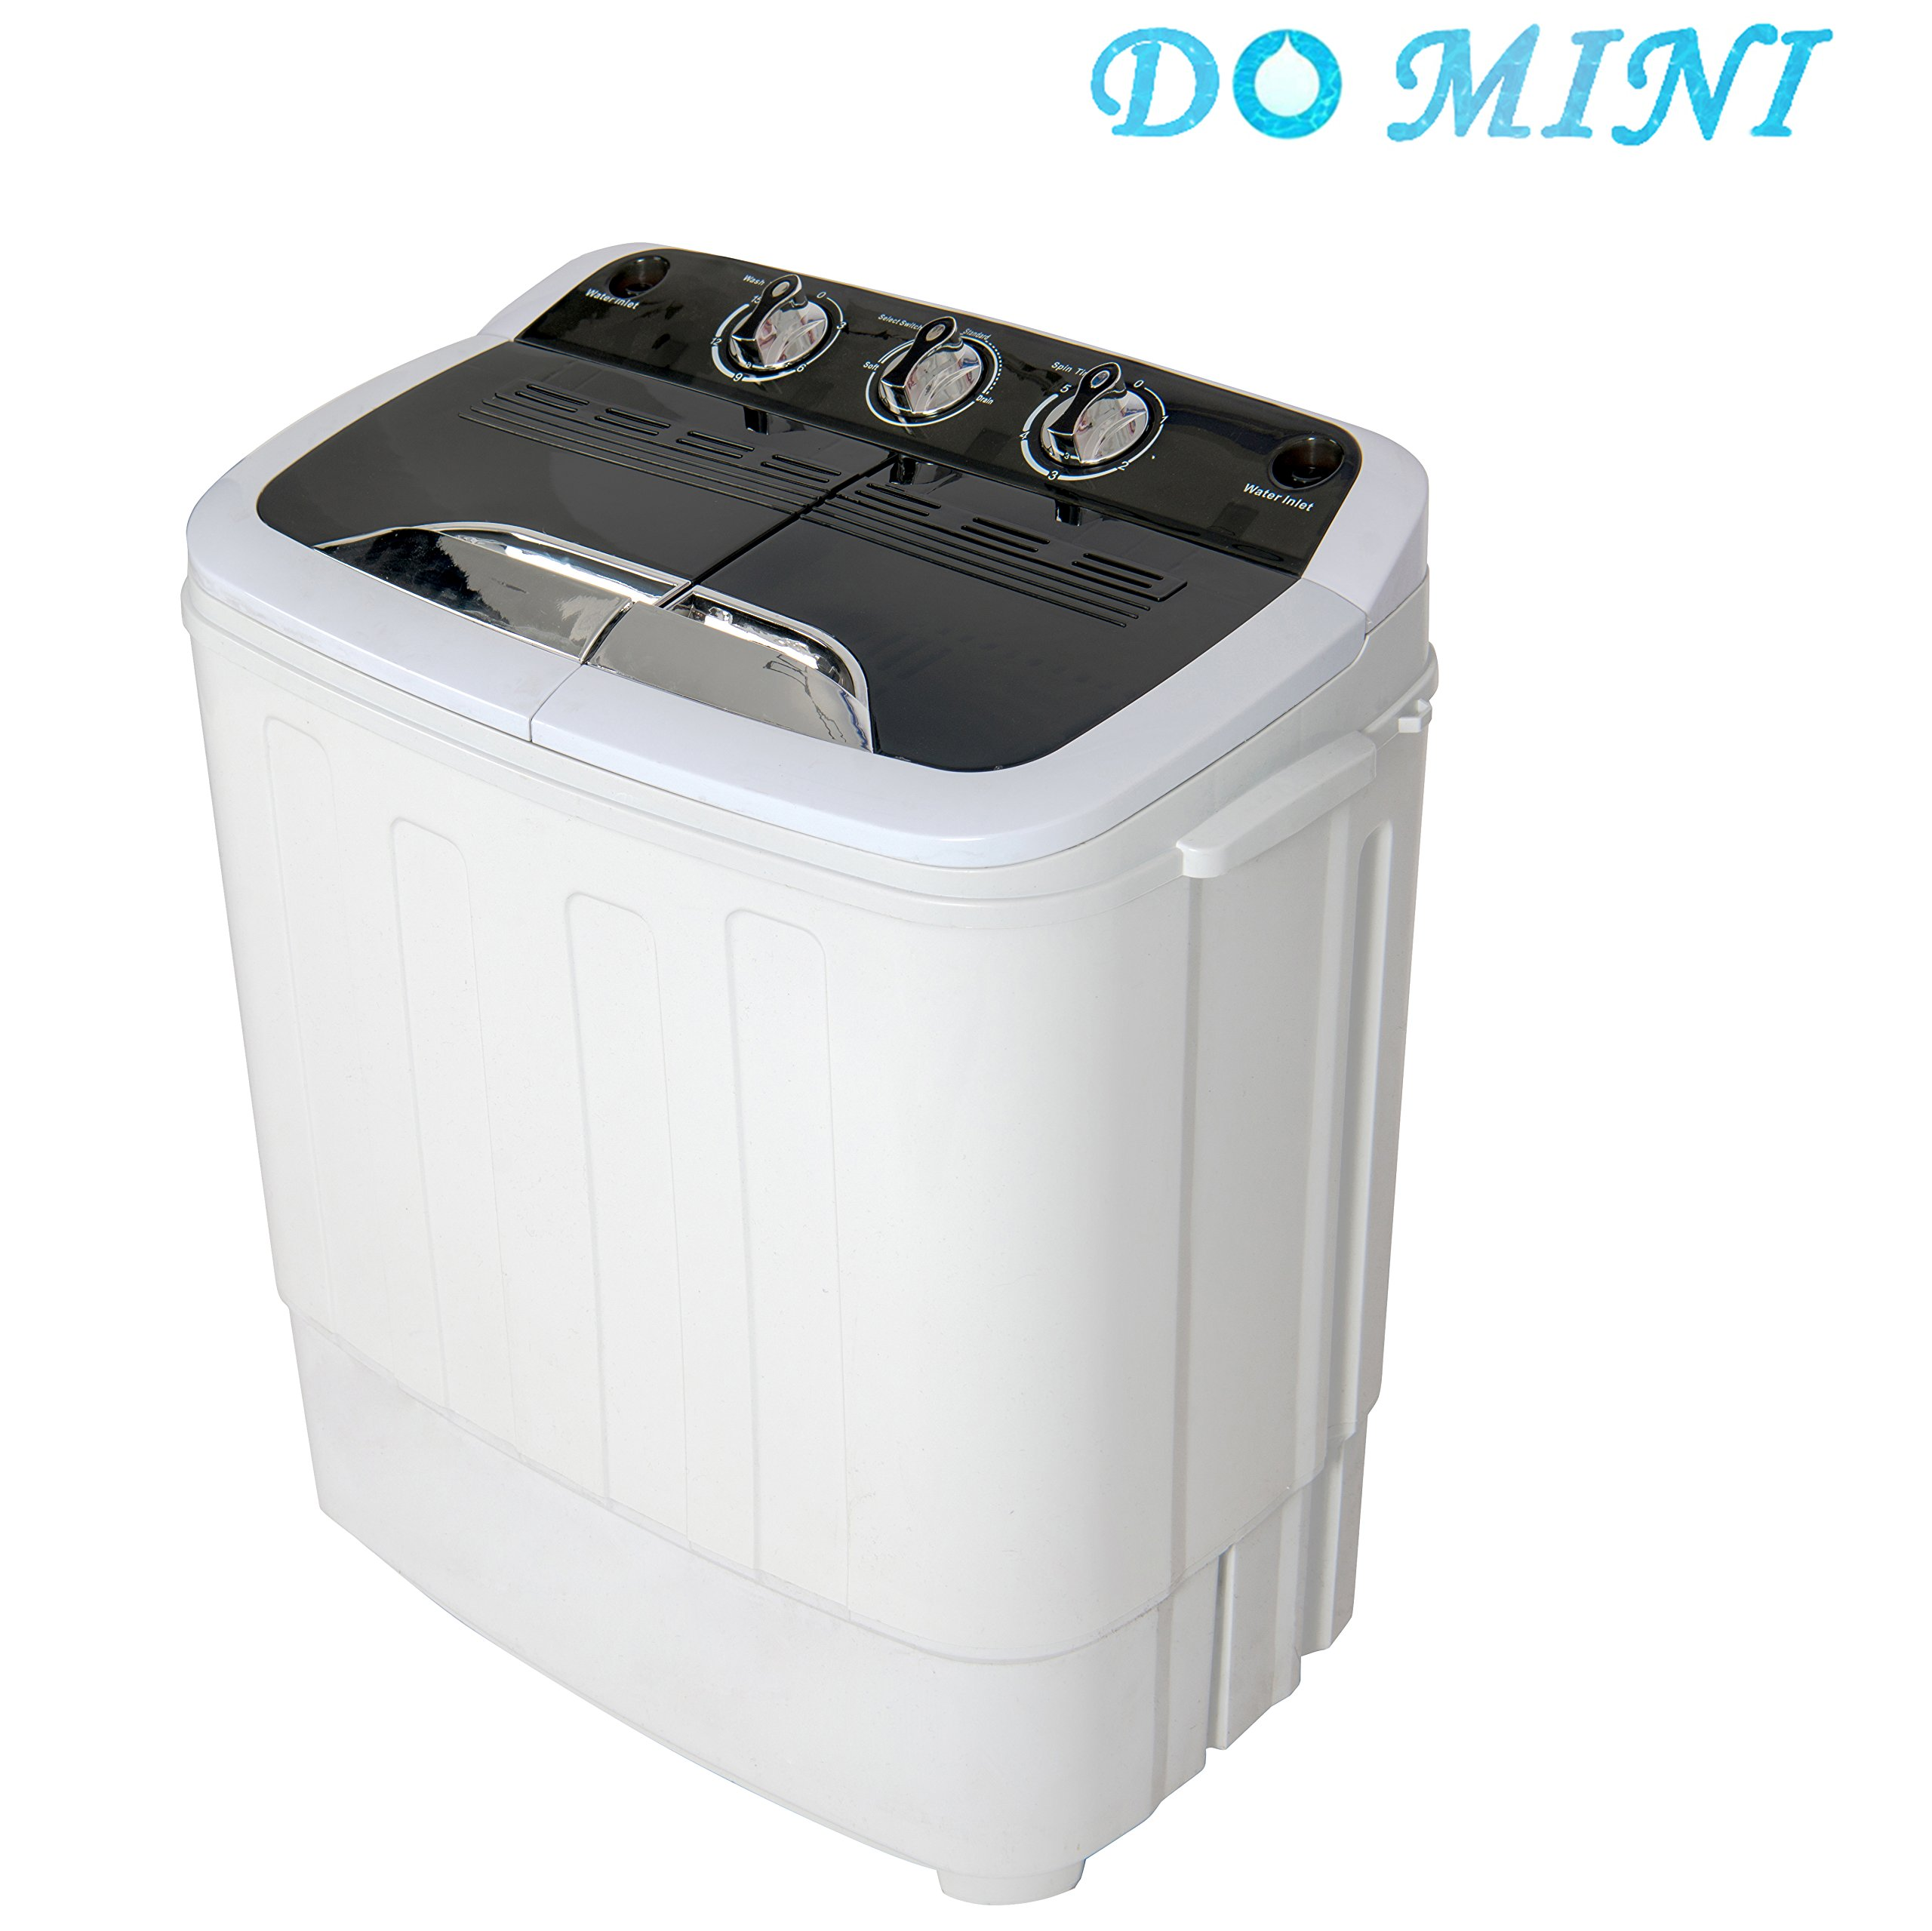 small washing machine do mini portable compact tub 12 3ibs capacity washing 10348